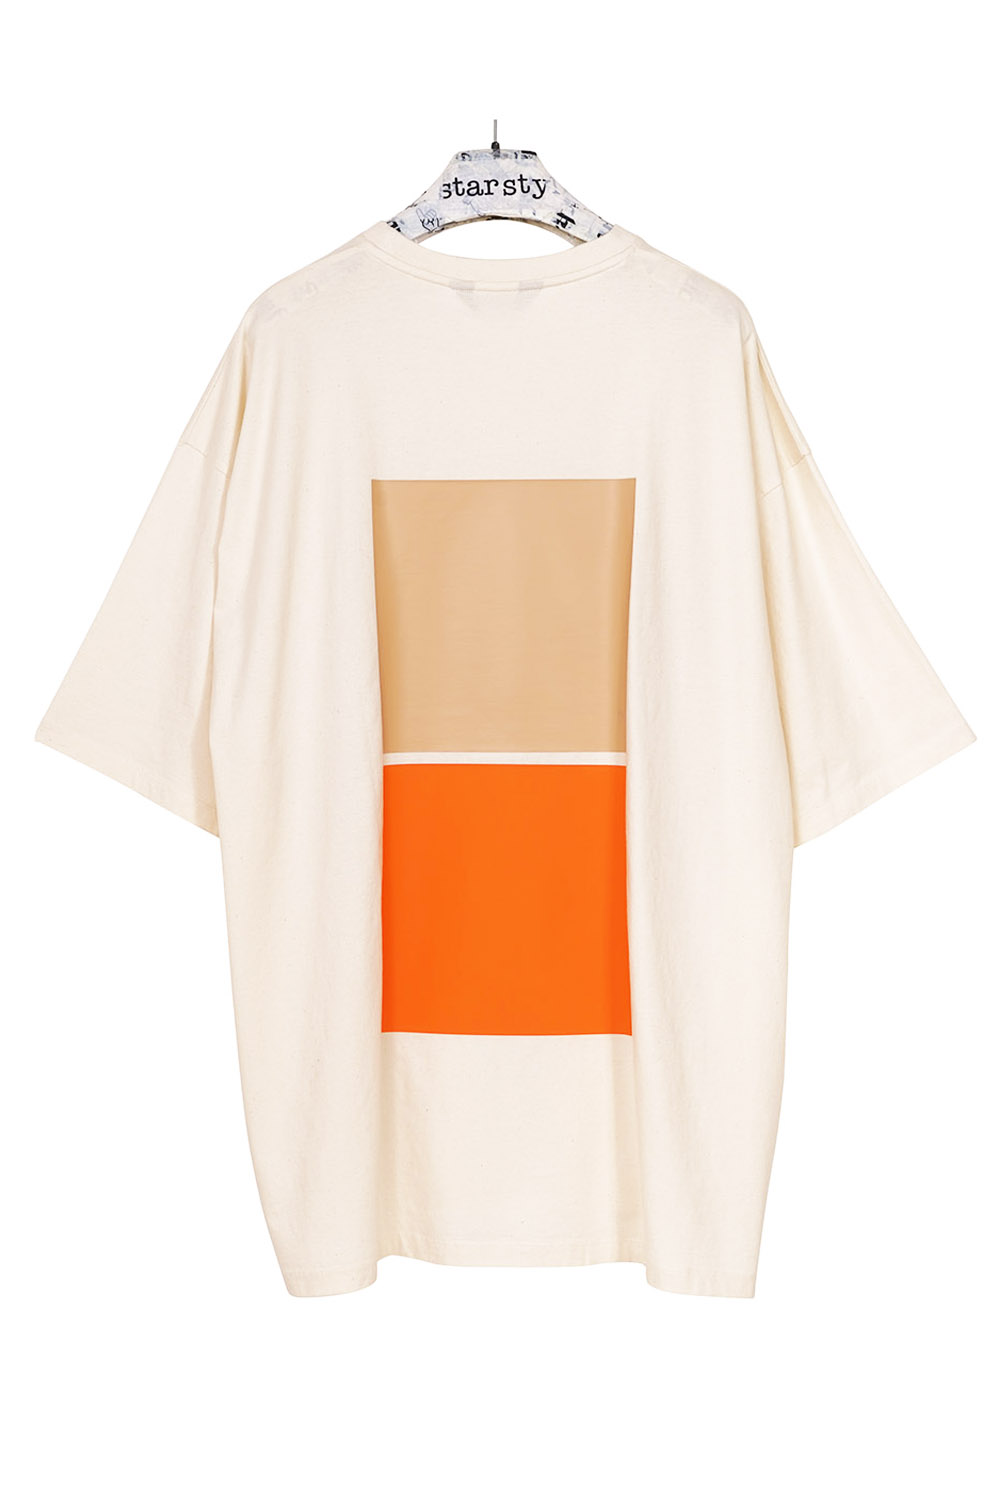 Double Square Bigshirt - 1